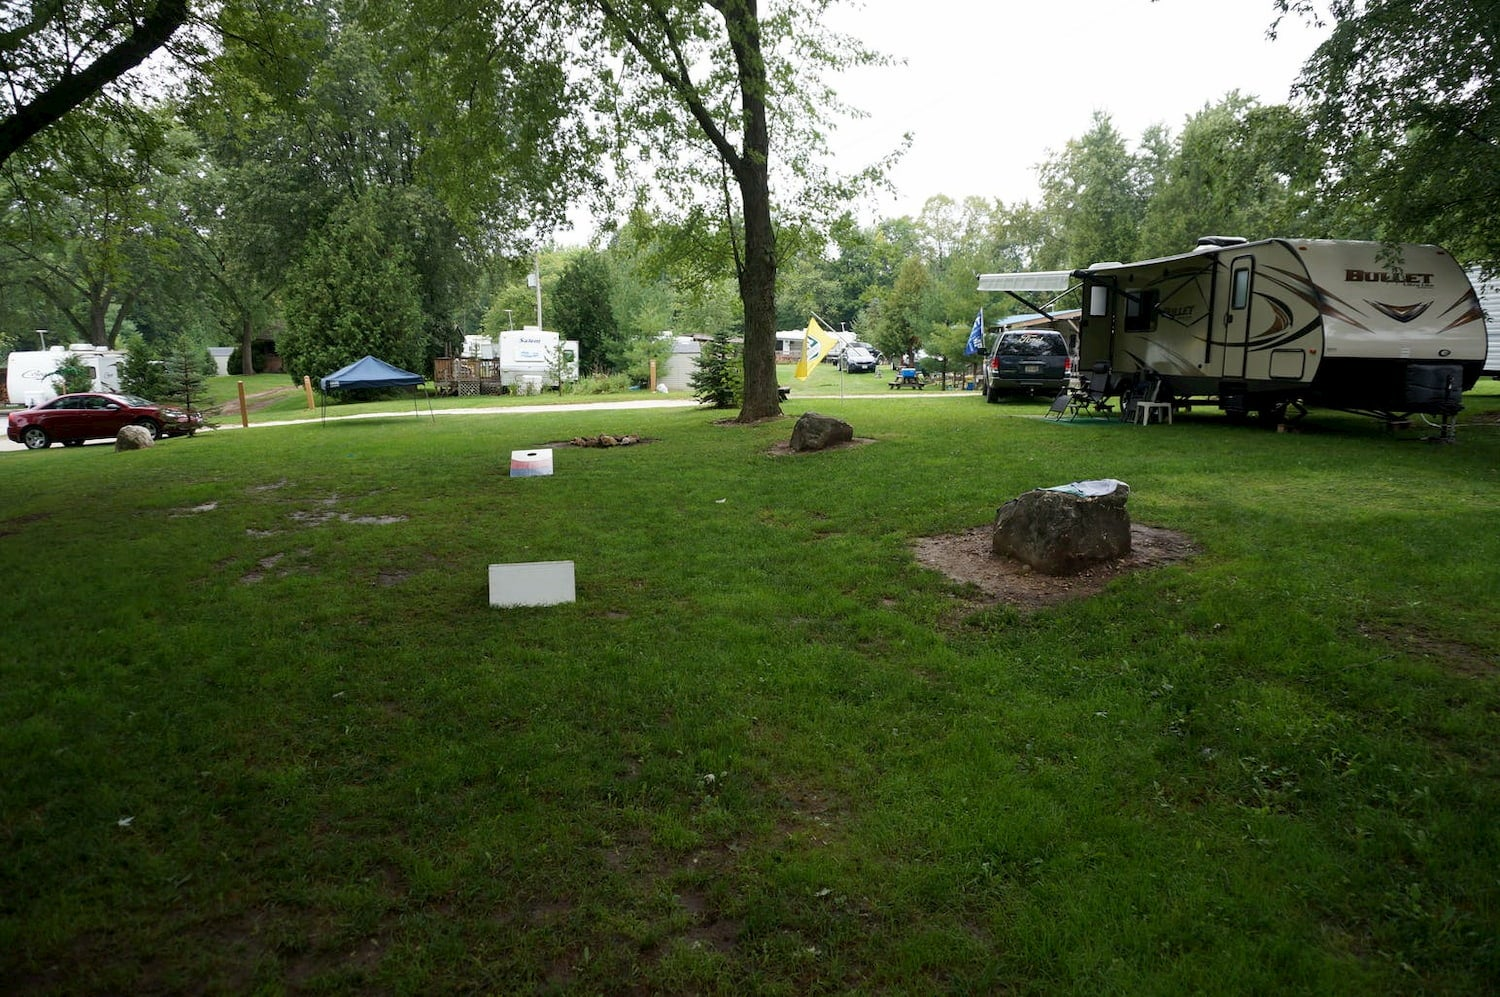 grass field at campground with many rvs parked in the background